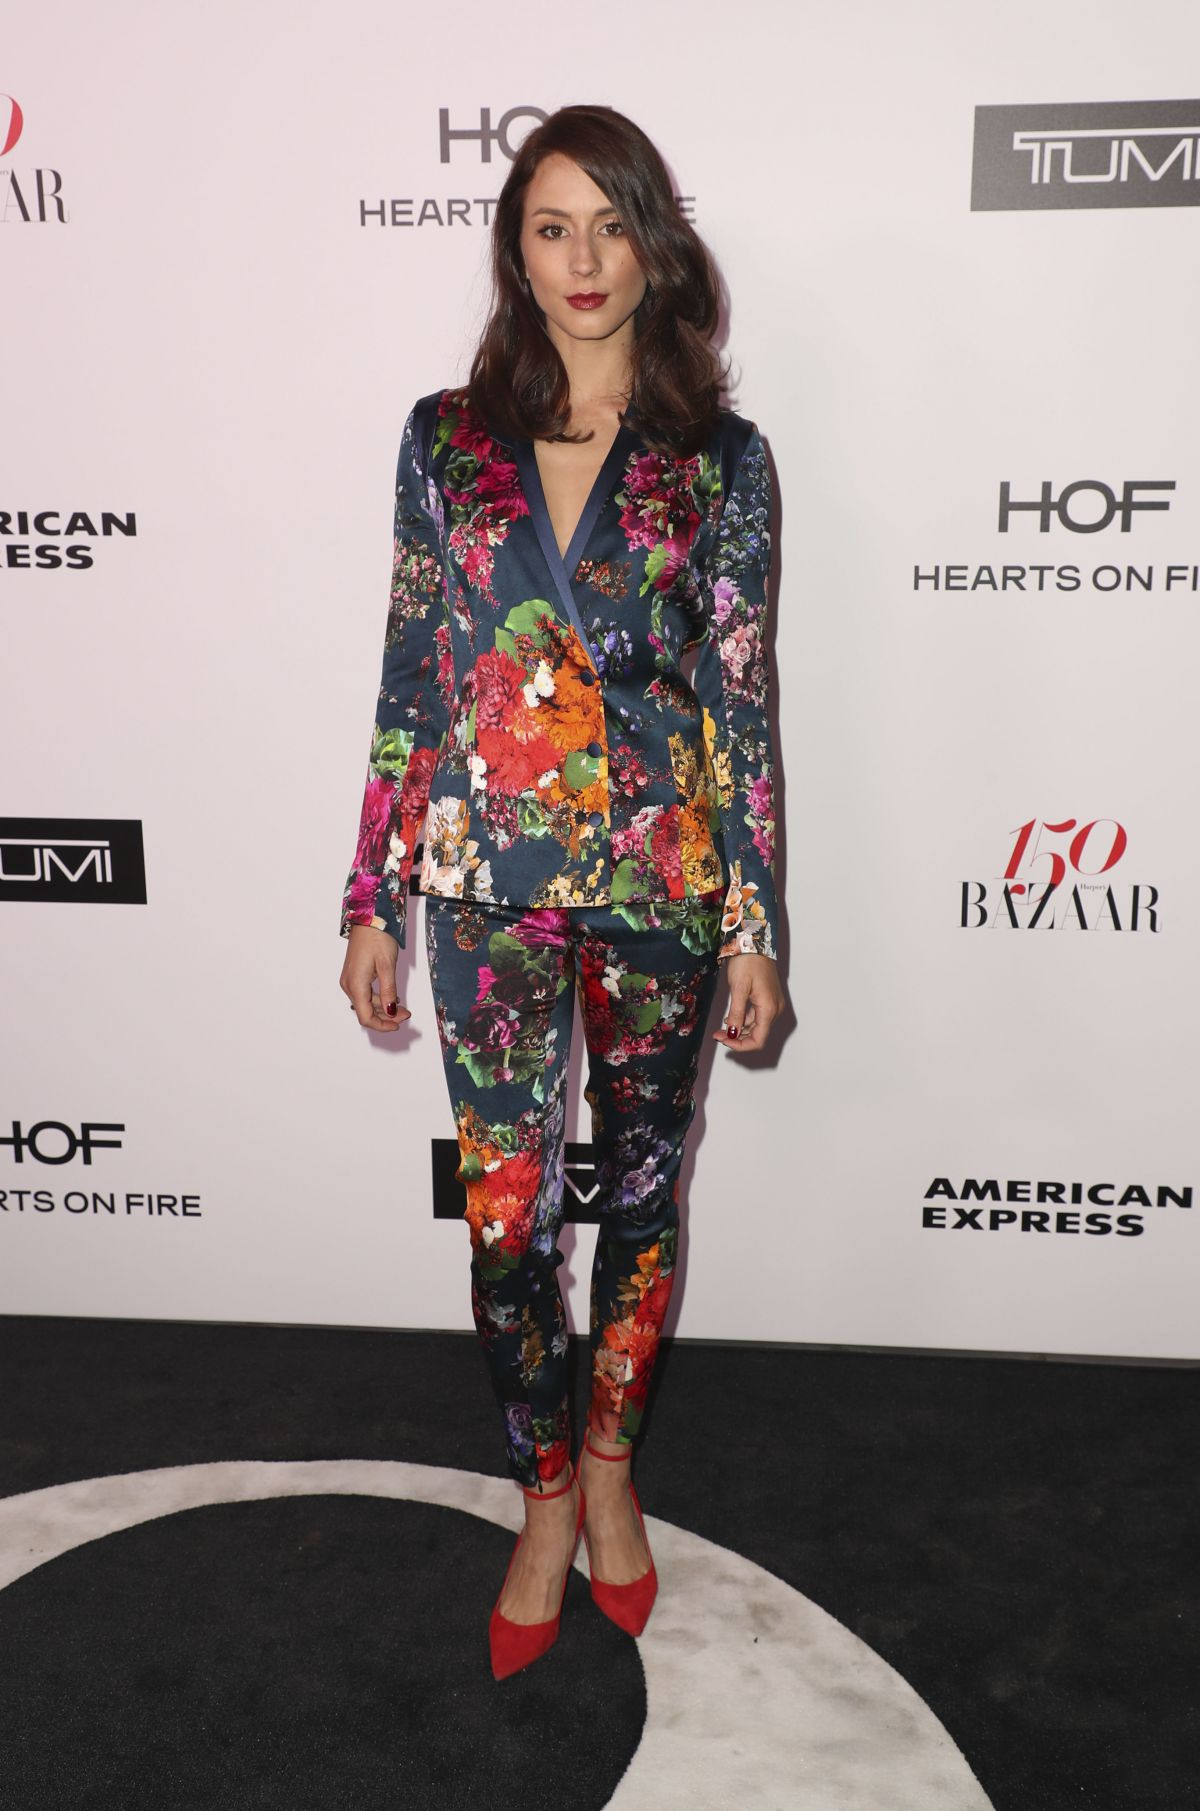 TROIAN BELLISARIO at Harper's Bazaar 150 Most Fashionable Women Party in Hollywood 01/27/2017